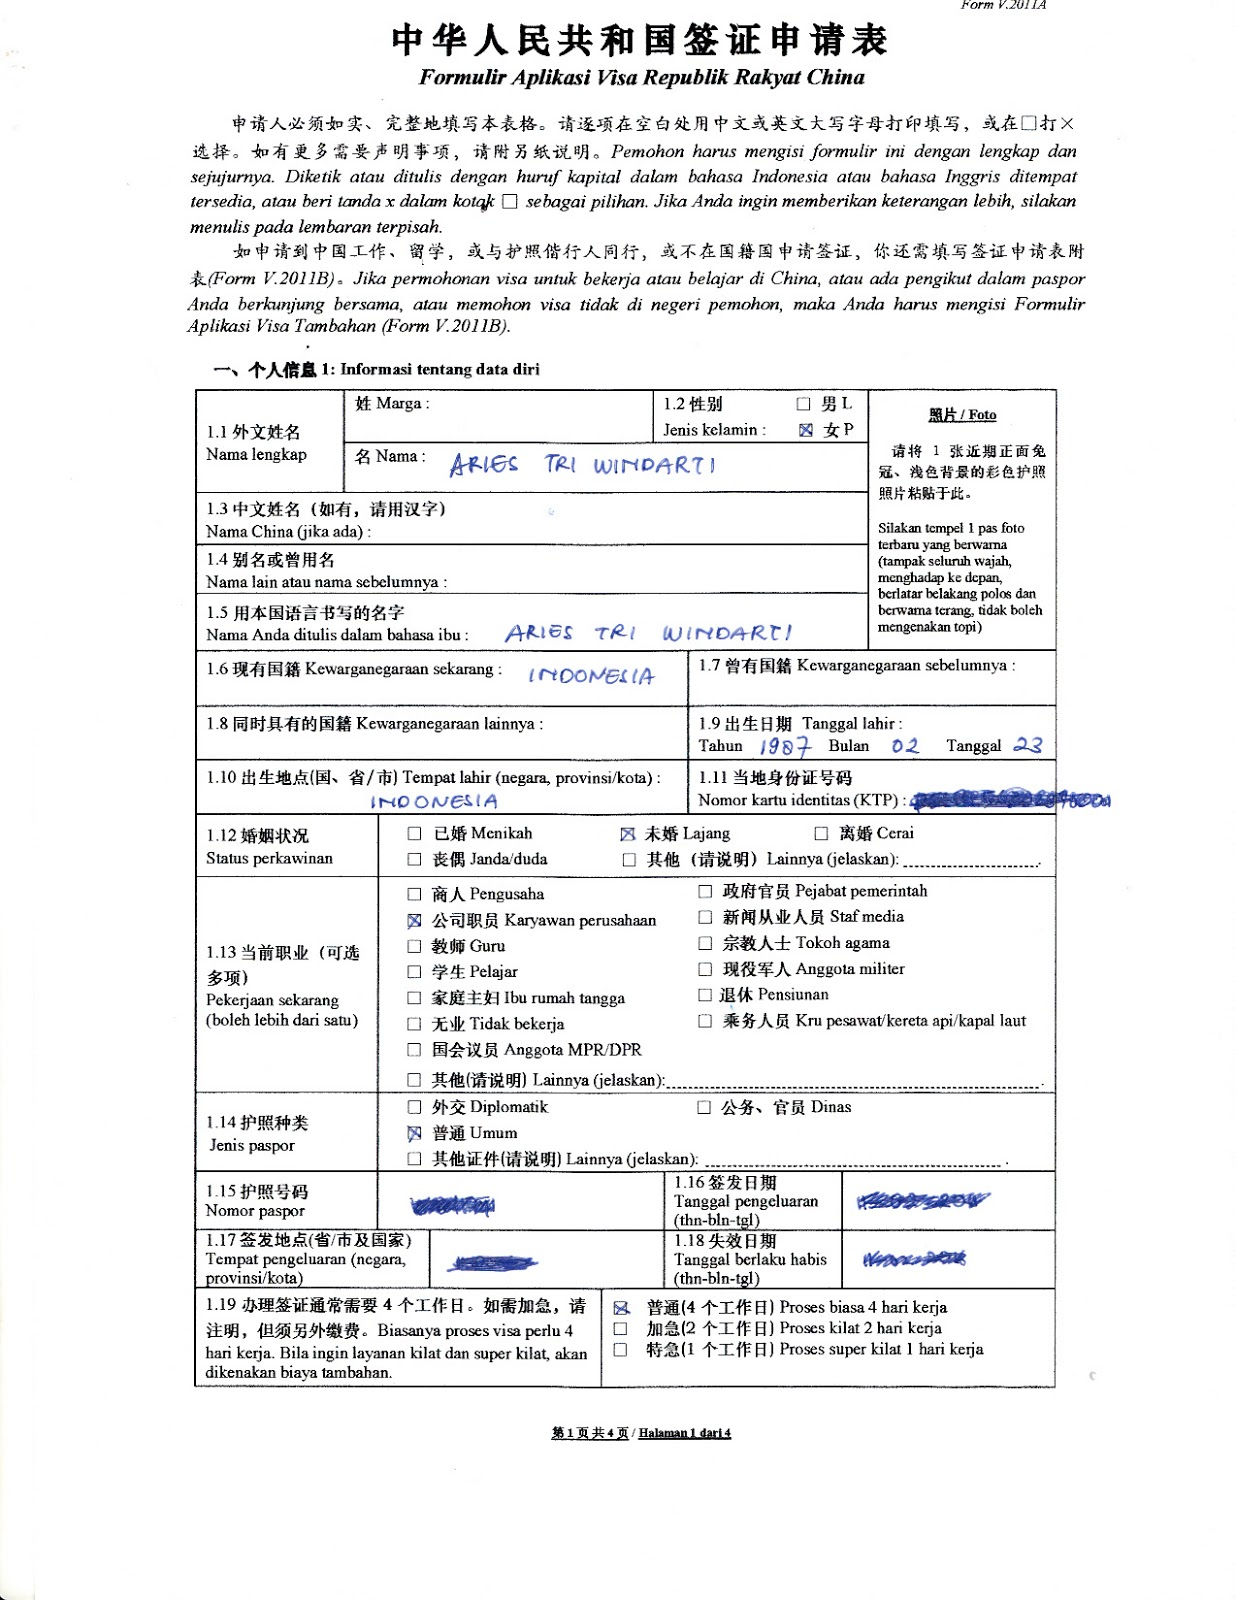 Aries Tri W.: Cara Apply Visa China